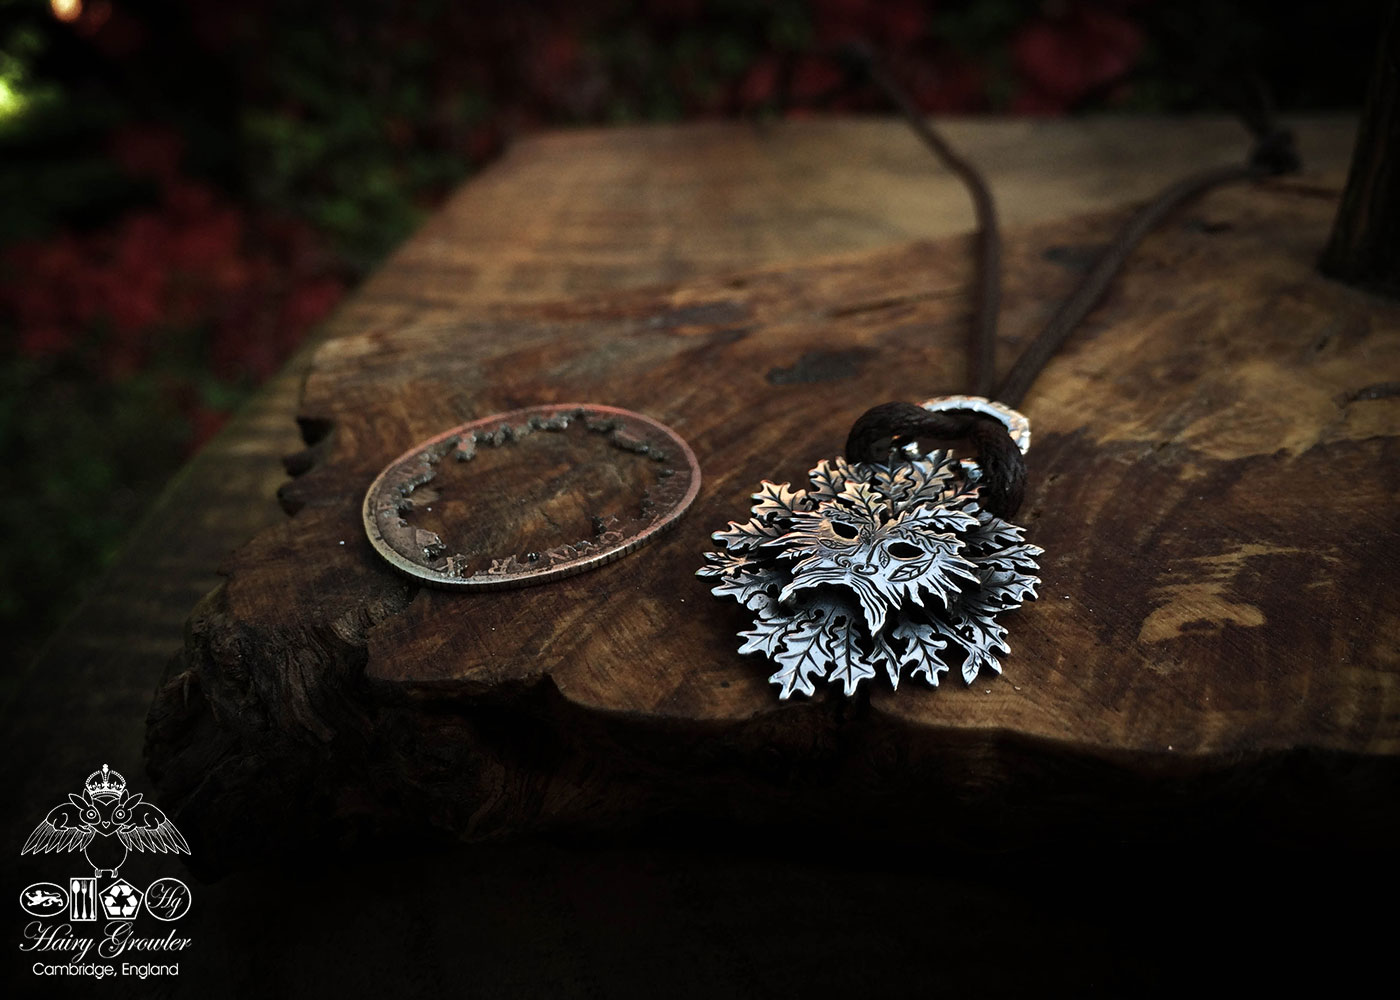 handmade and repurposed silver shilling coin Greenman necklace pendant